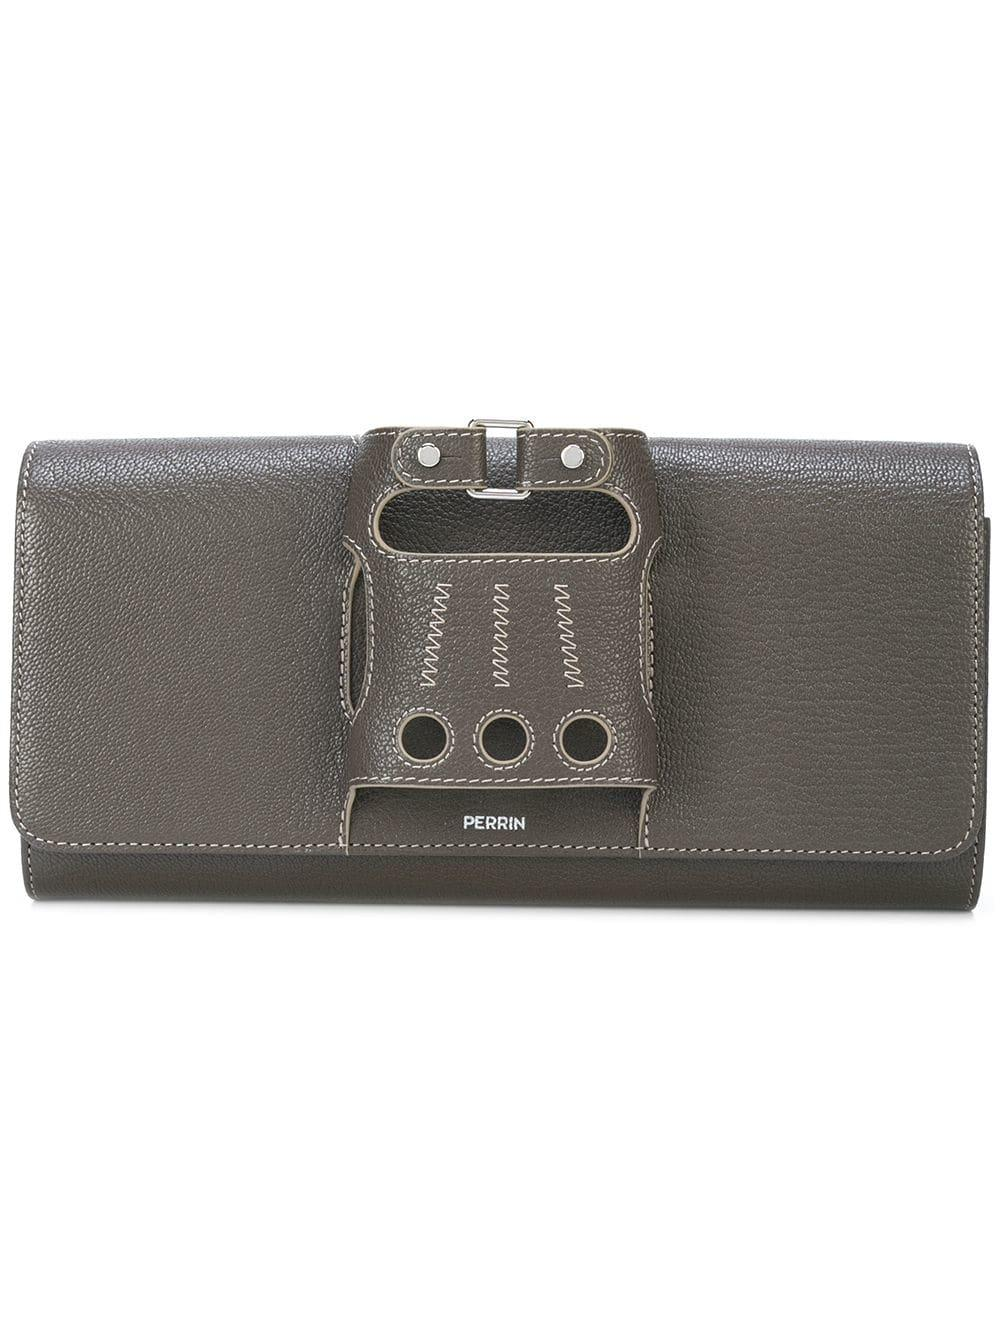 Le Cabriolet Glove Handle Clutch Bag